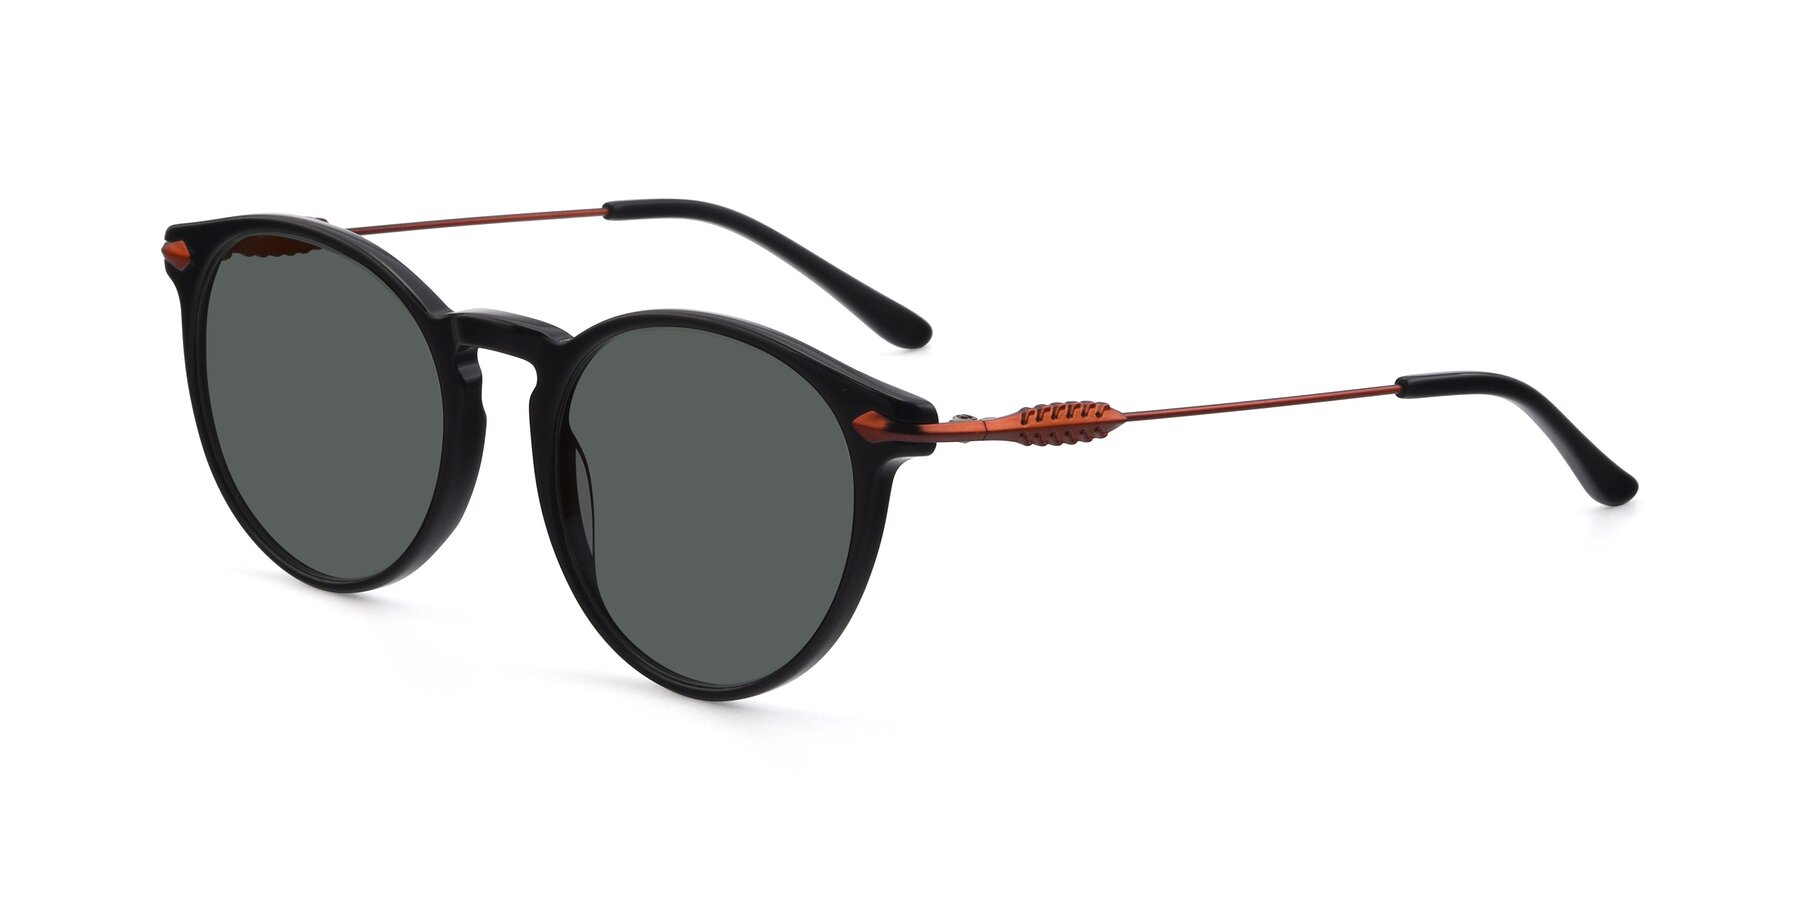 Angle of 17660 in Black with Gray Polarized Lenses